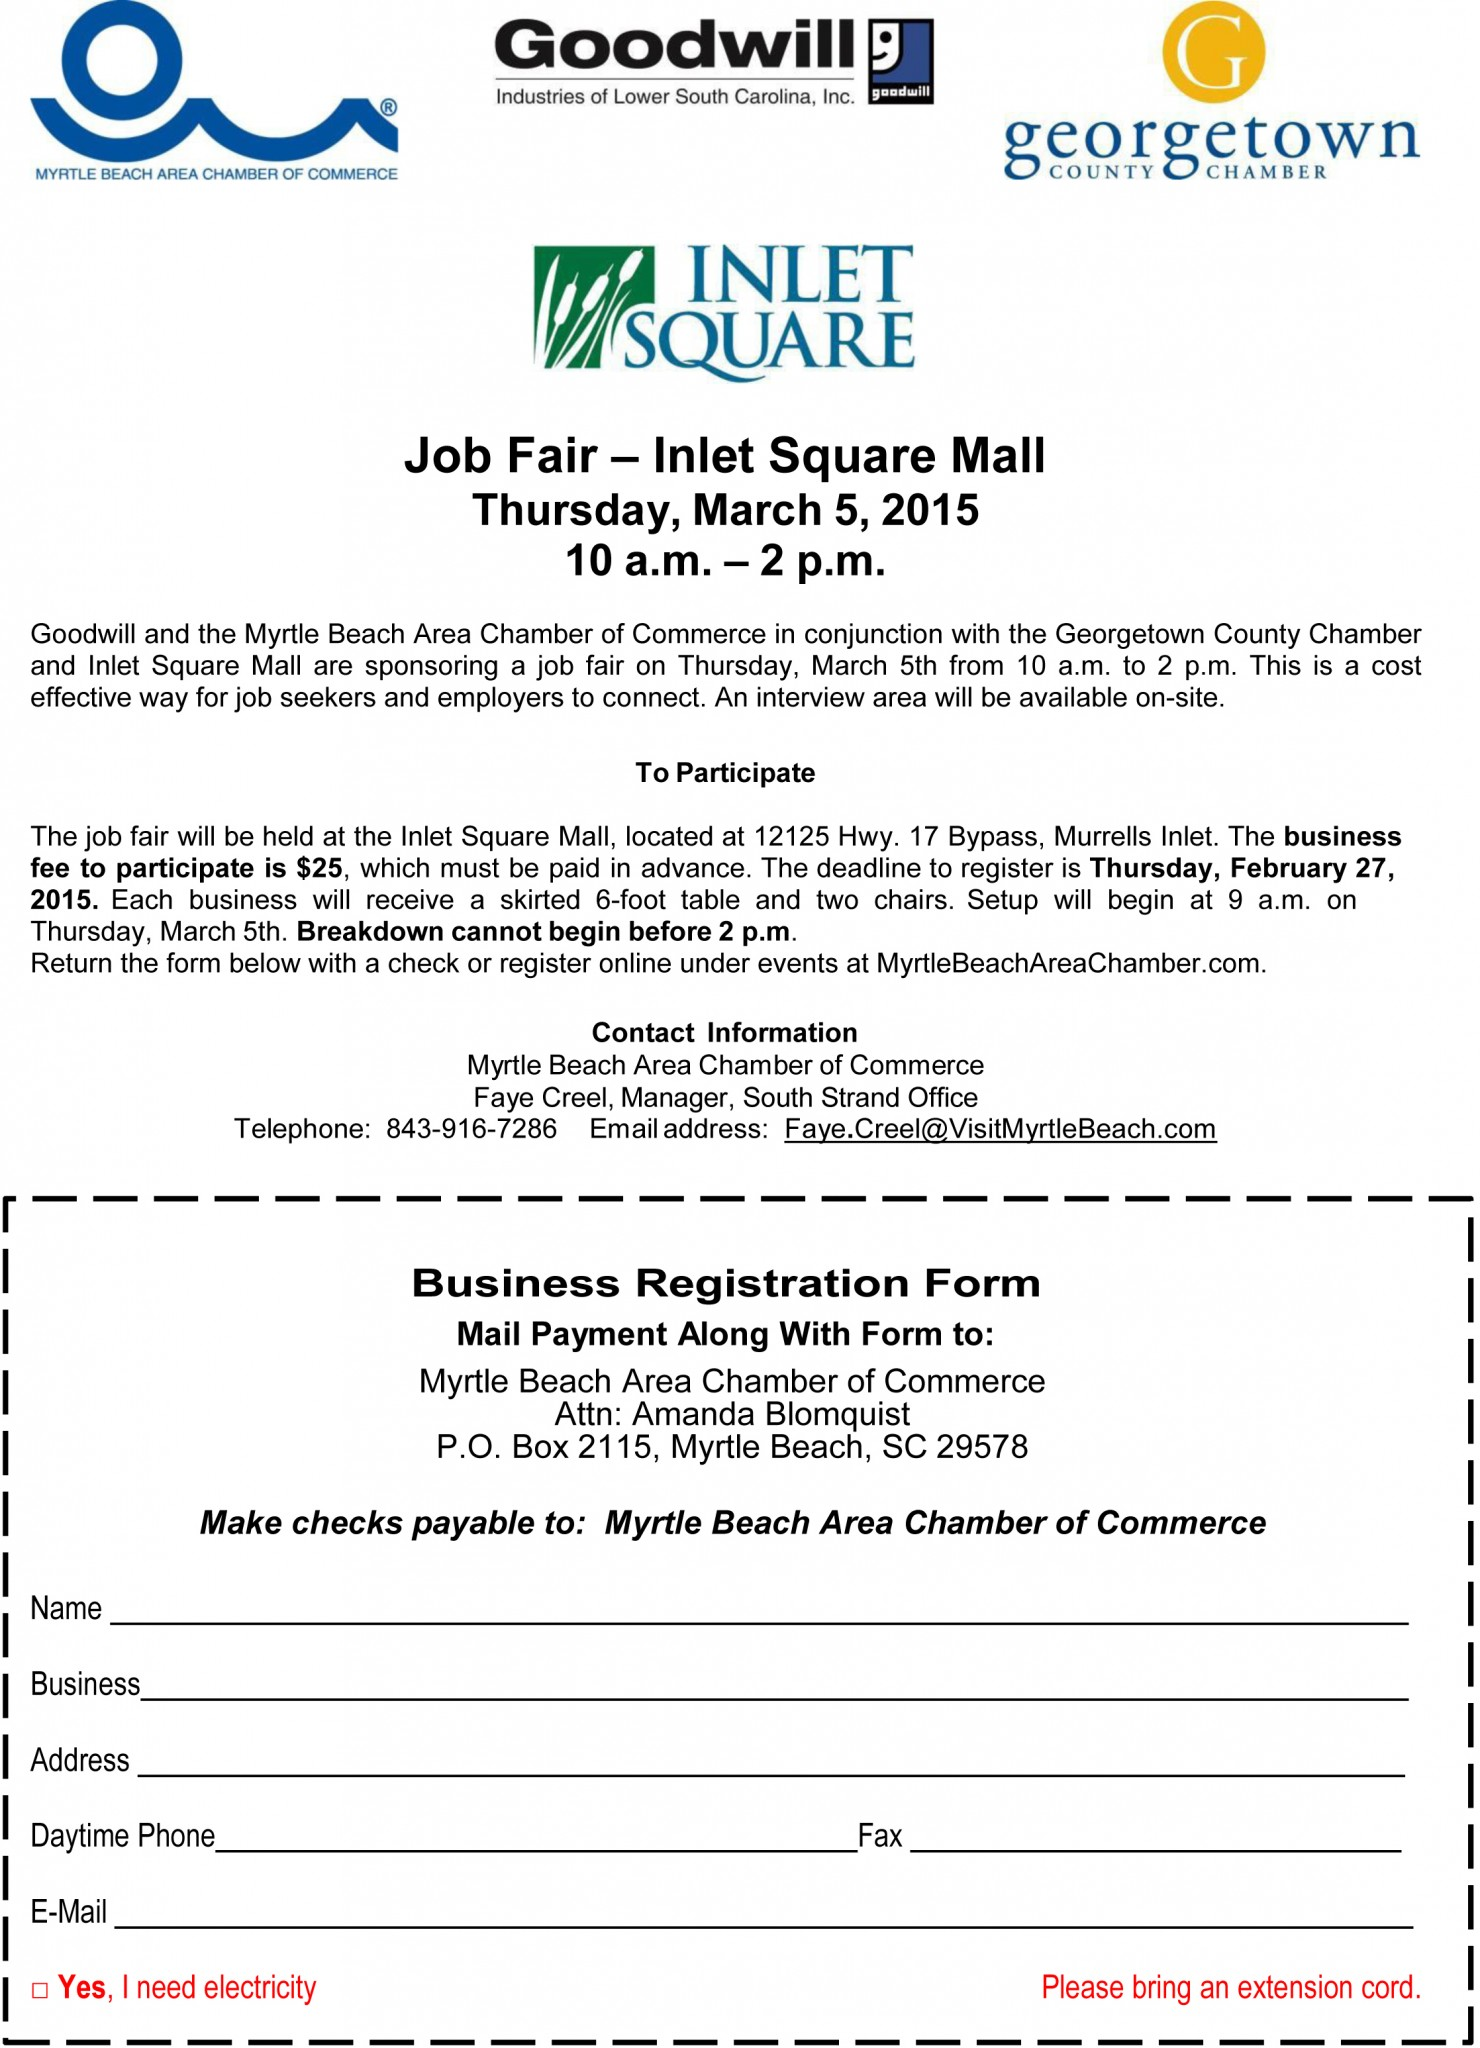 2015 South Strand Job Fair Registration | Conway Chamber of Commerce